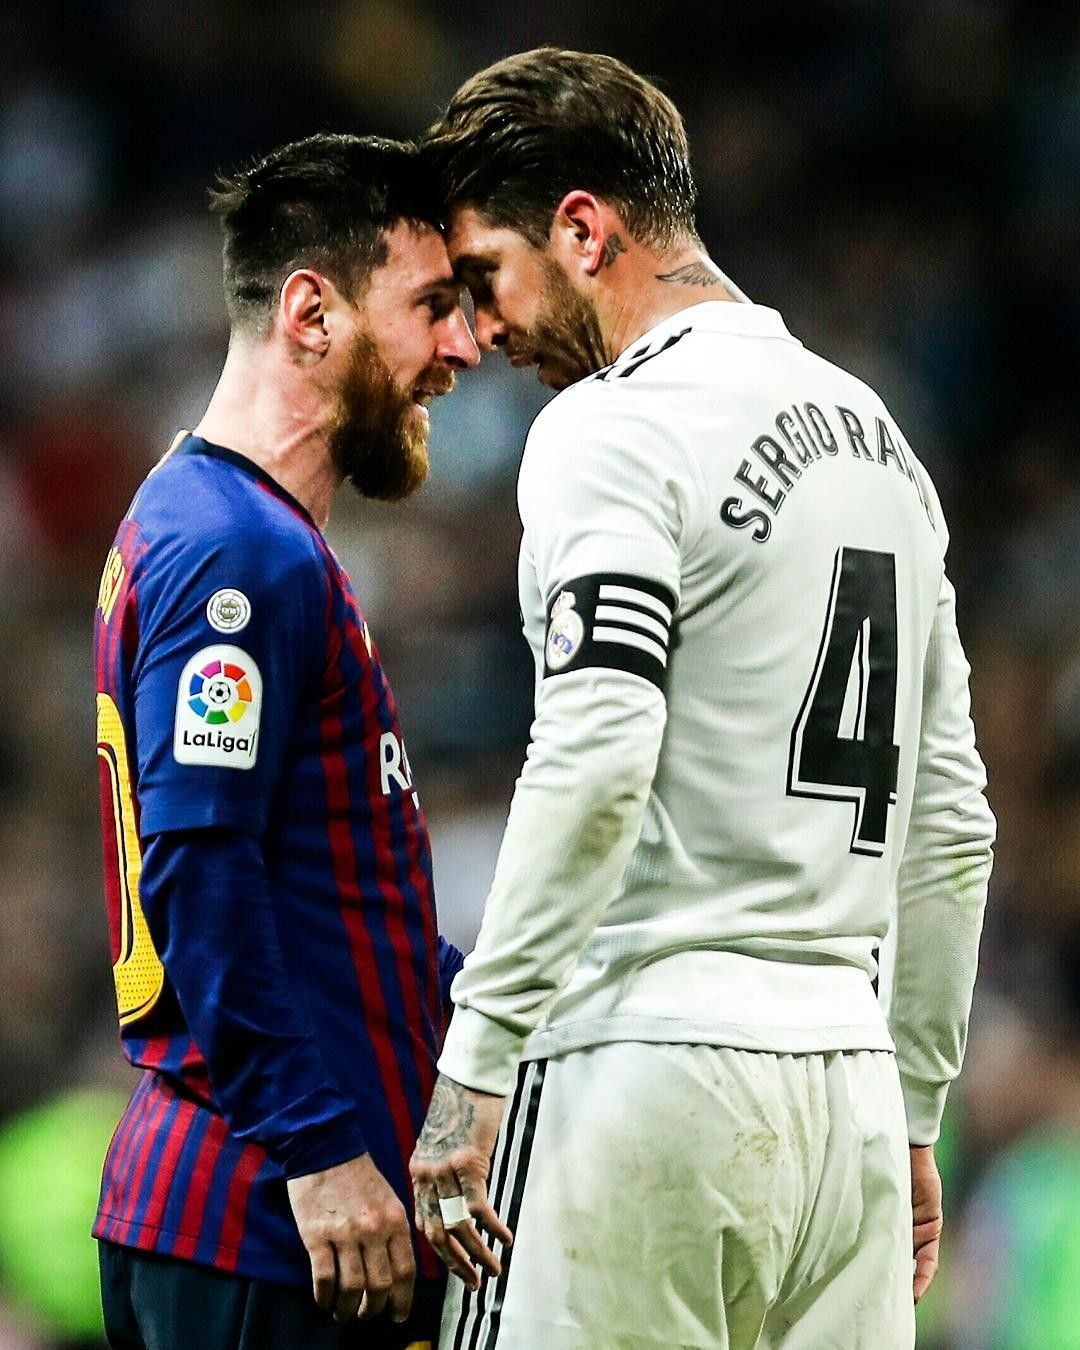 Pin By Nehir On Messi Messi Vs Messi Soccer Messi